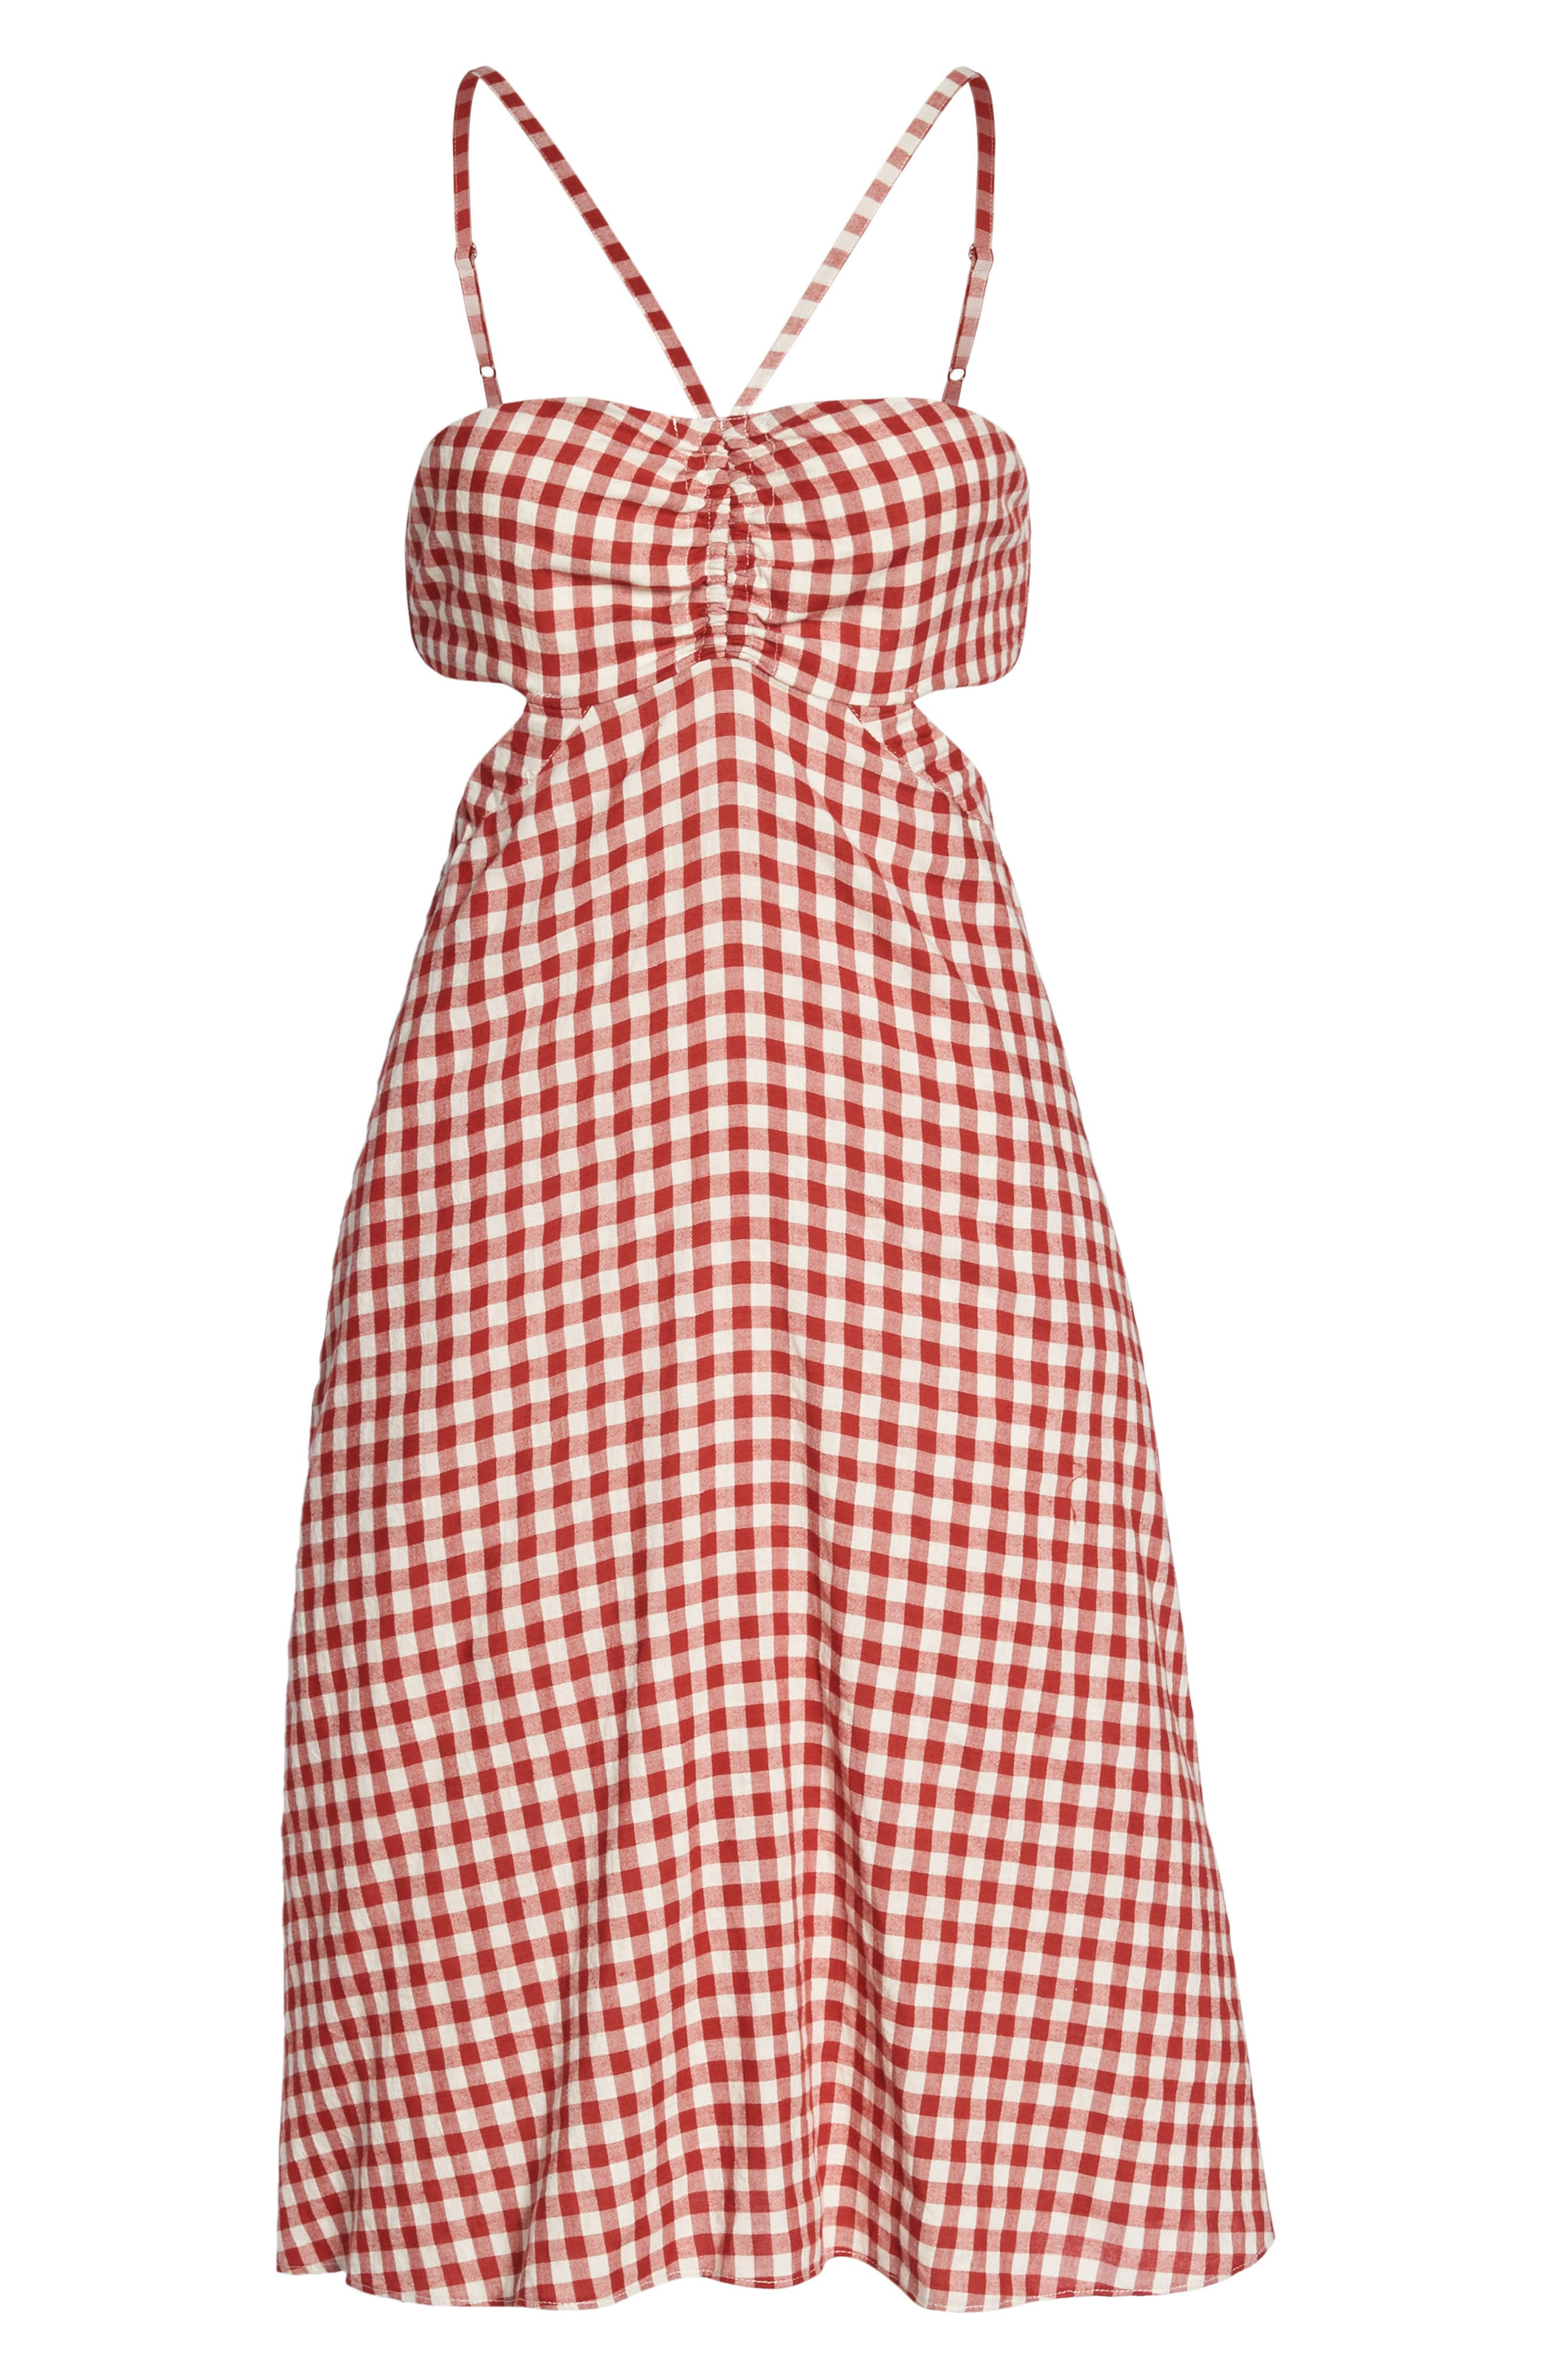 Gingham Bandeau Dress,                             Alternate thumbnail 7, color,                             Red-White